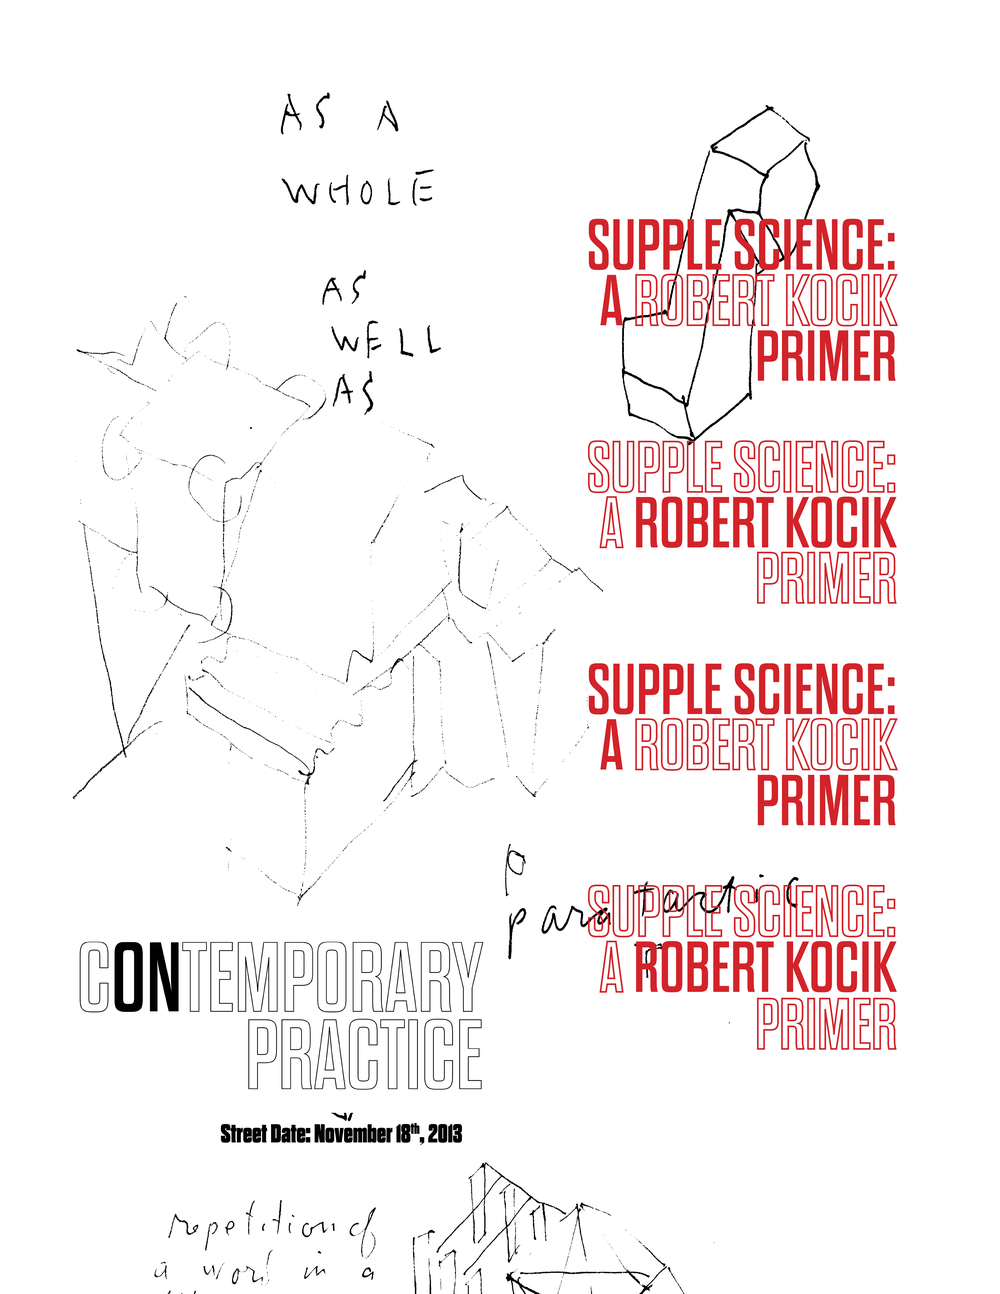 Supple Science Preorder New.jpg